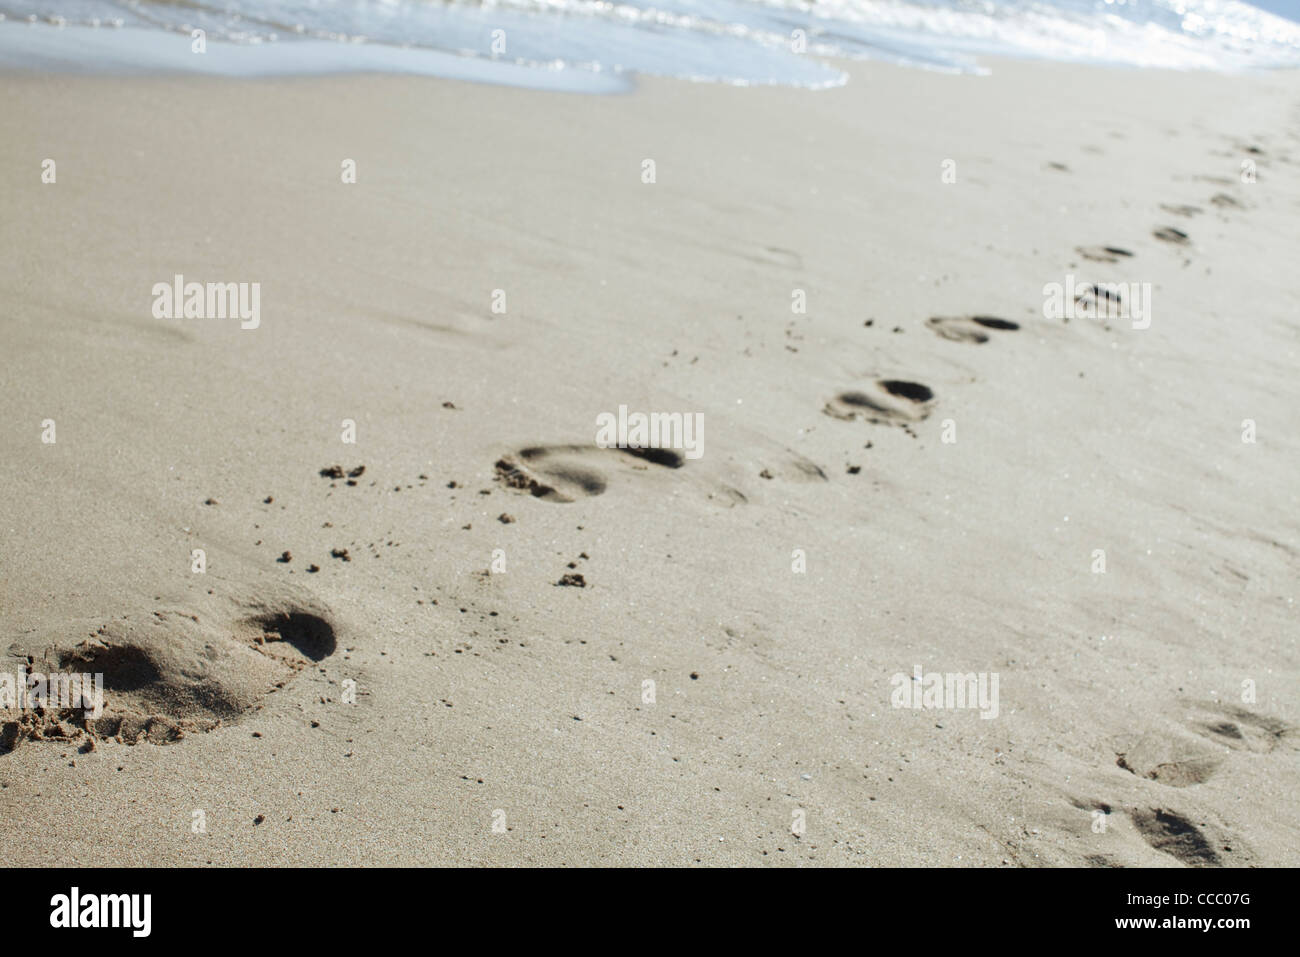 Footprints in sand at the beach - Stock Image